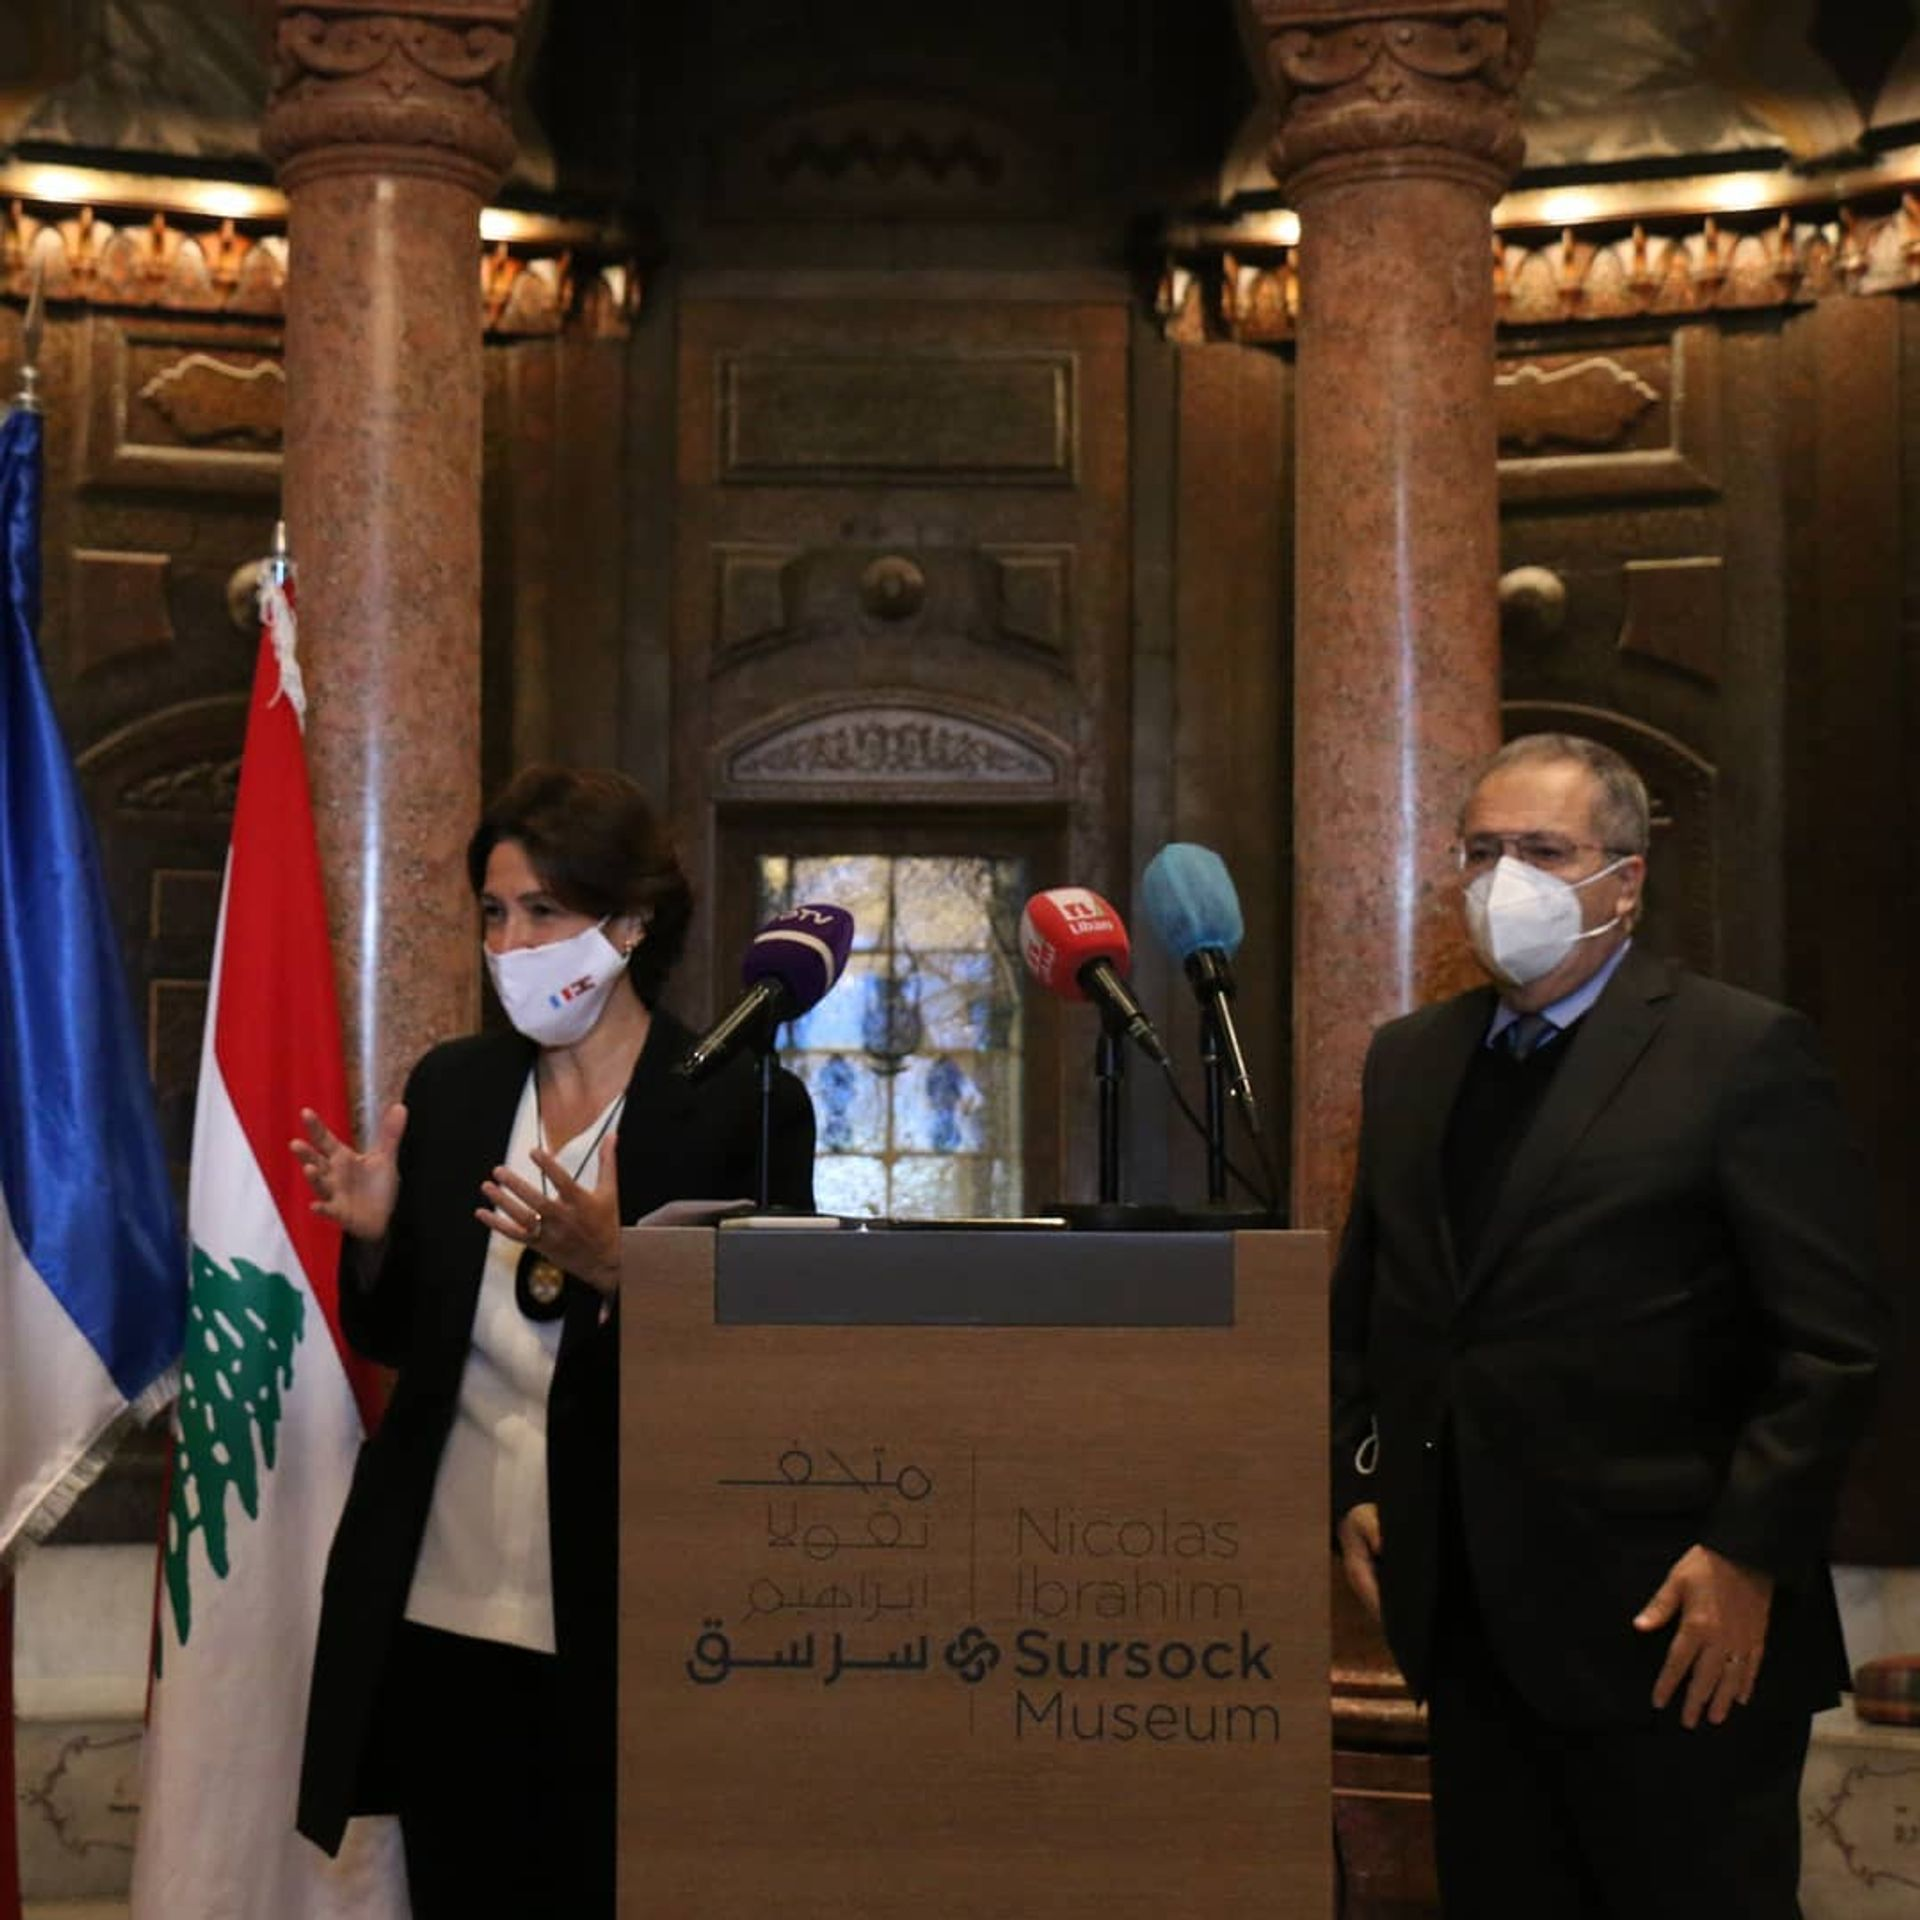 France's ambassador to Lebanon, Anne Grillo (left), has announced a grant of €500,000 from the French culture ministry to support the Sursock Museum's recovery after the Beirut explosion on 4 August 2020 Photo: Rowina Bou-Harb